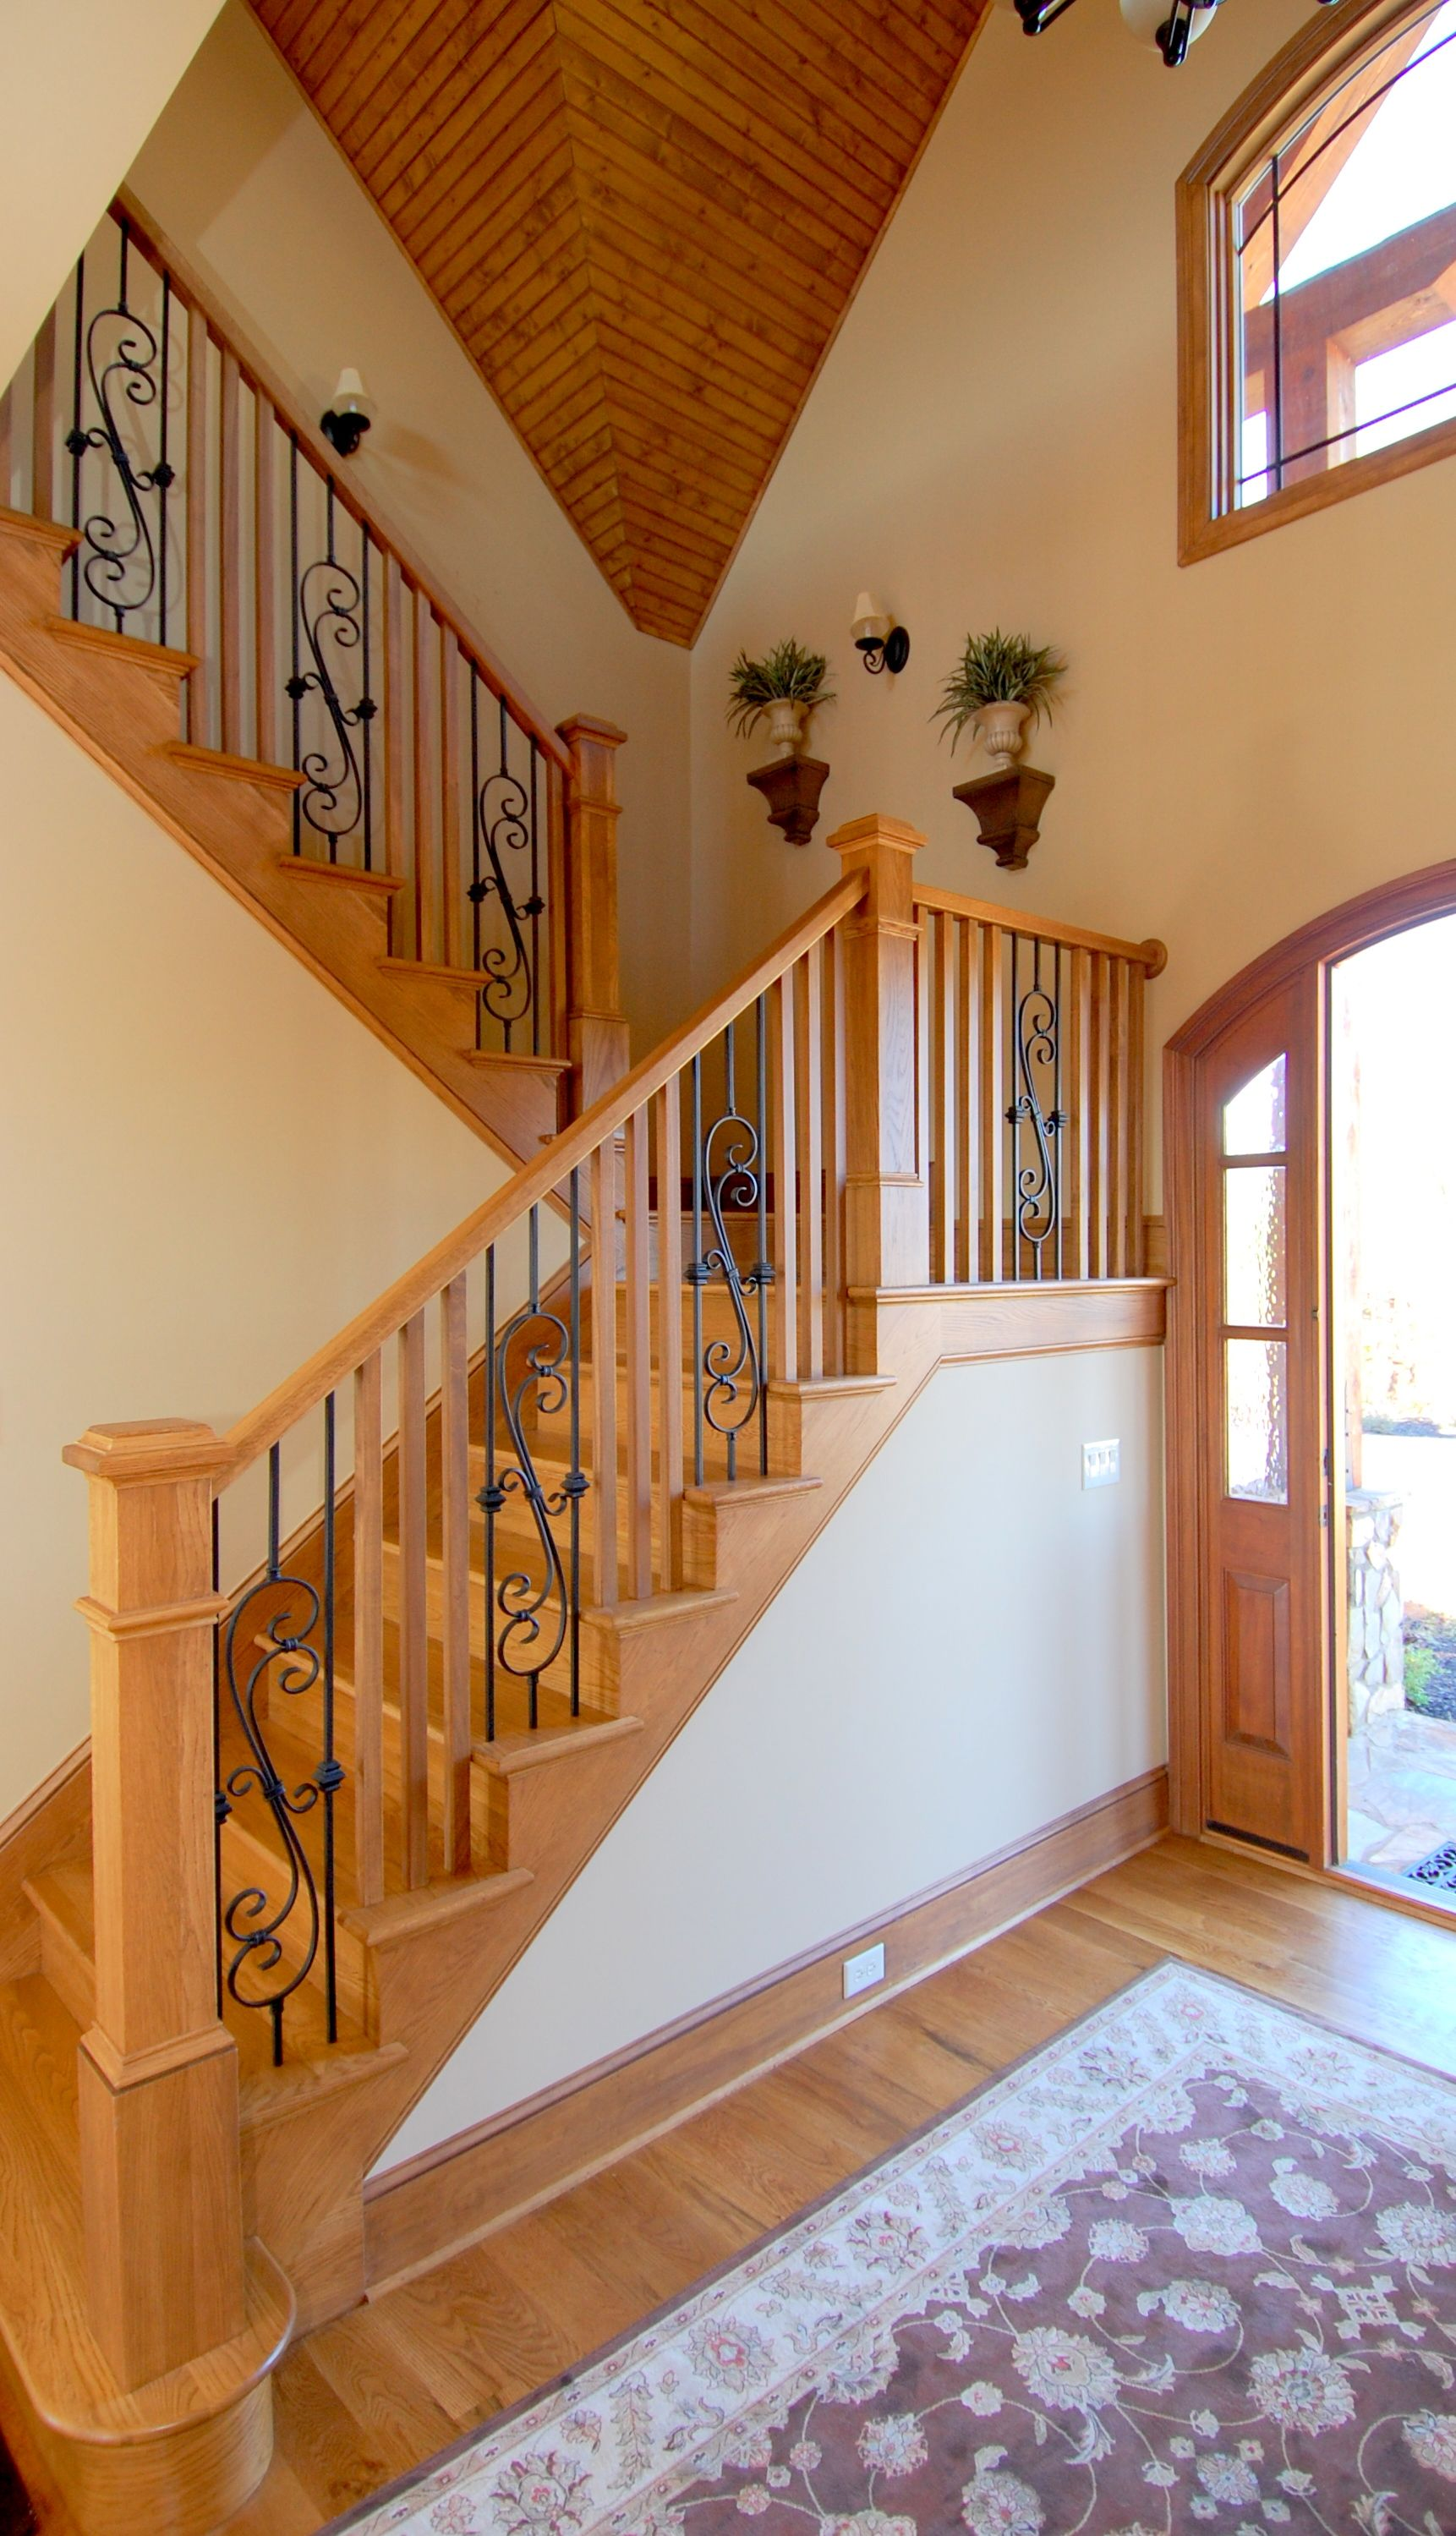 Best Rustic Lakefront Home Boast A All Wood And Iron Staircase 640 x 480